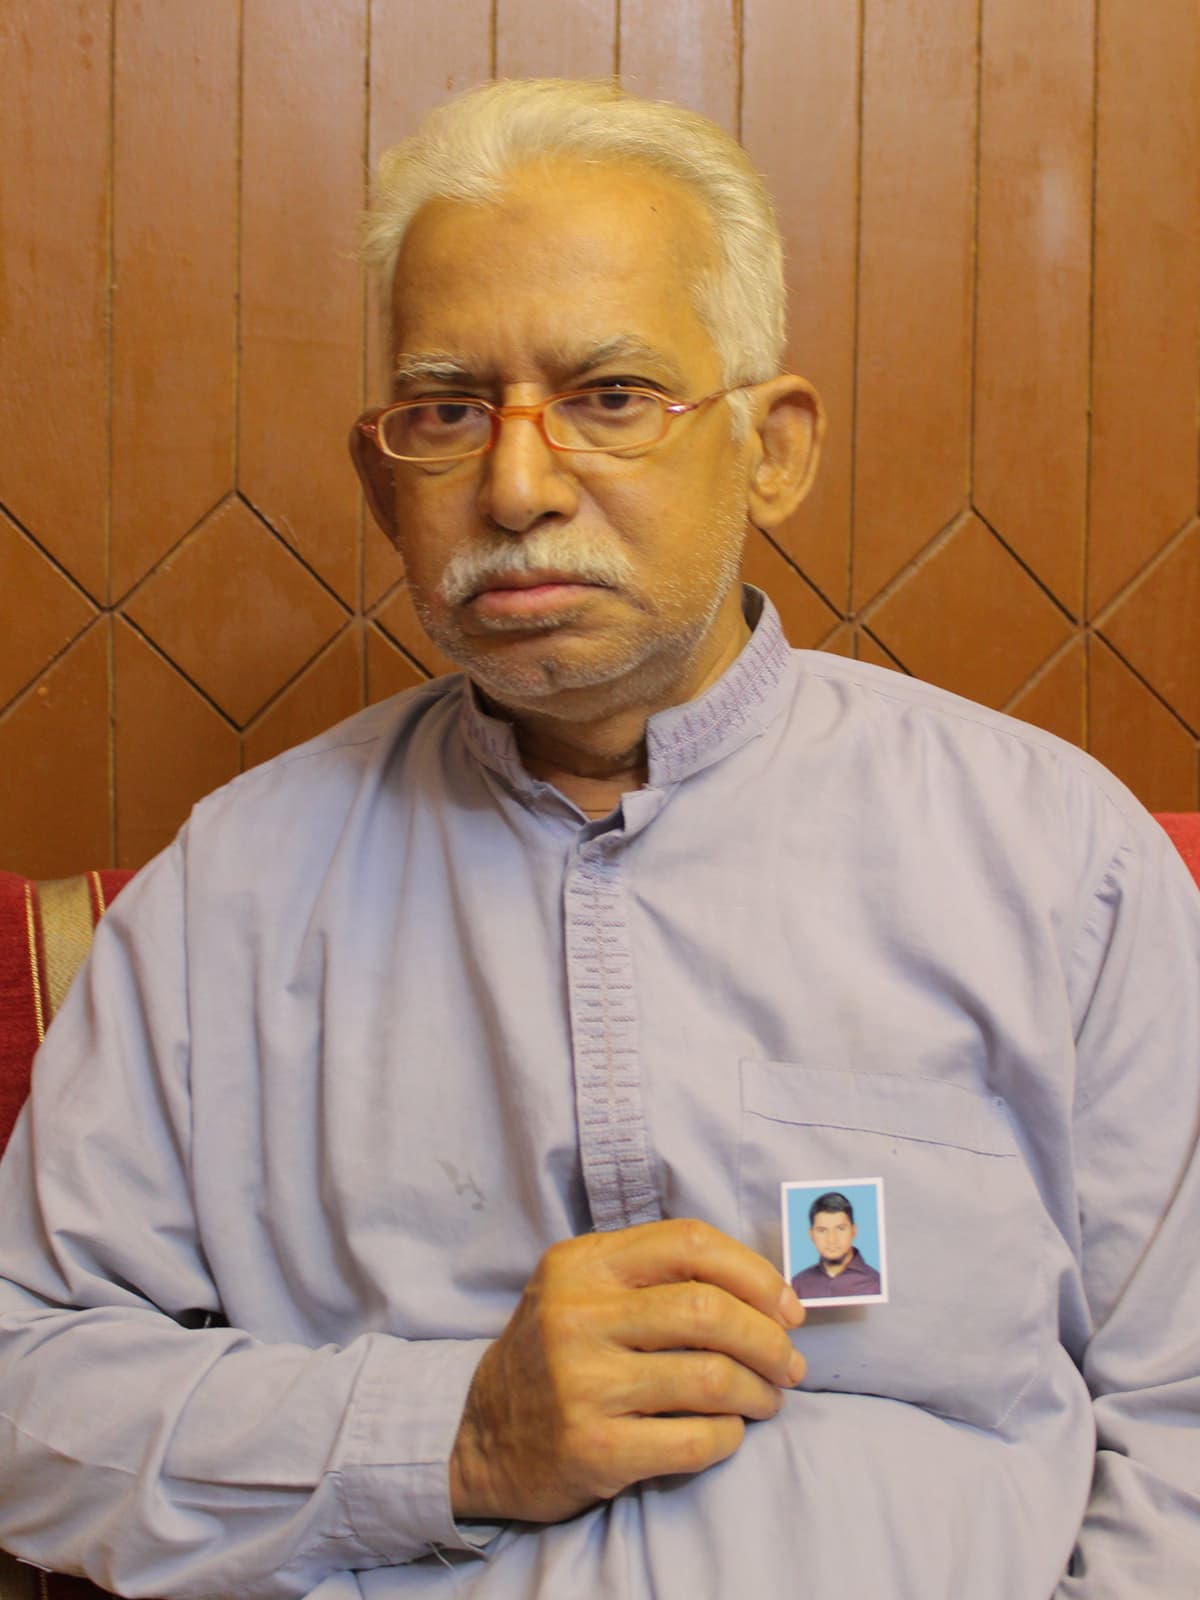 Mohammad Jamil Akhter, father of missing Nabeel Akhter | Fawad Hasan